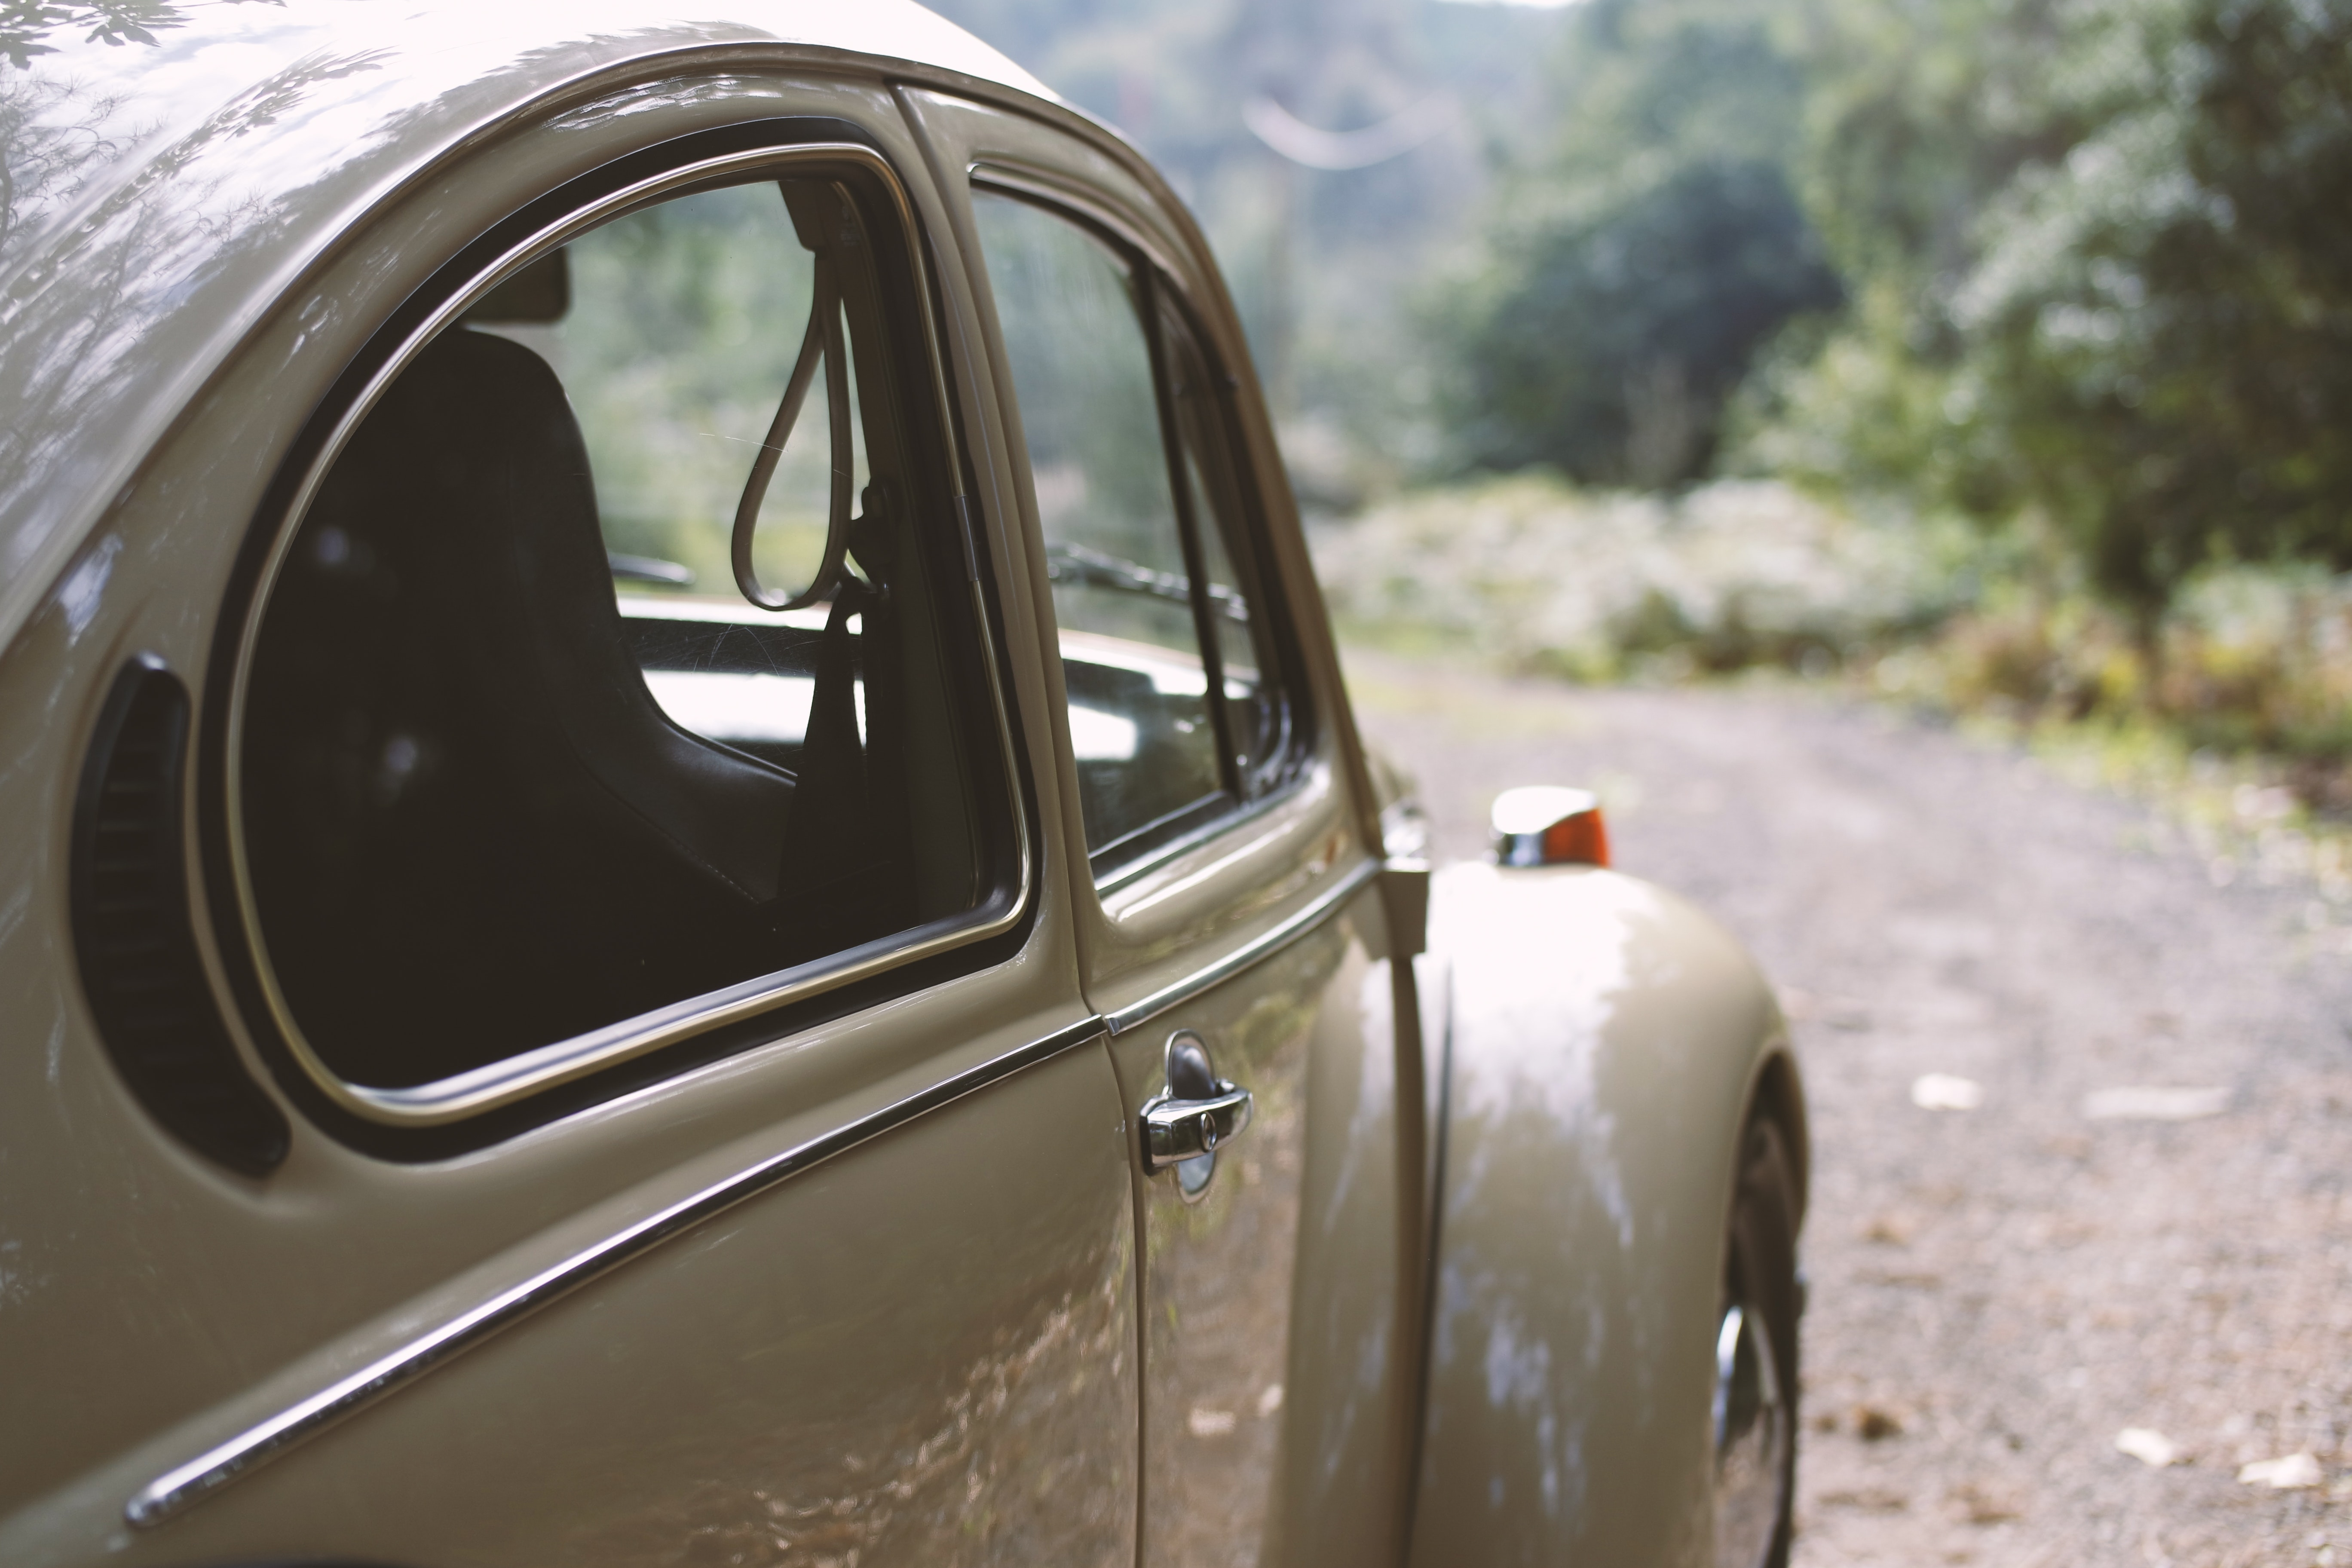 Brown Volkswagen Beetle, Beetle, Car, Classic, Road, HQ Photo